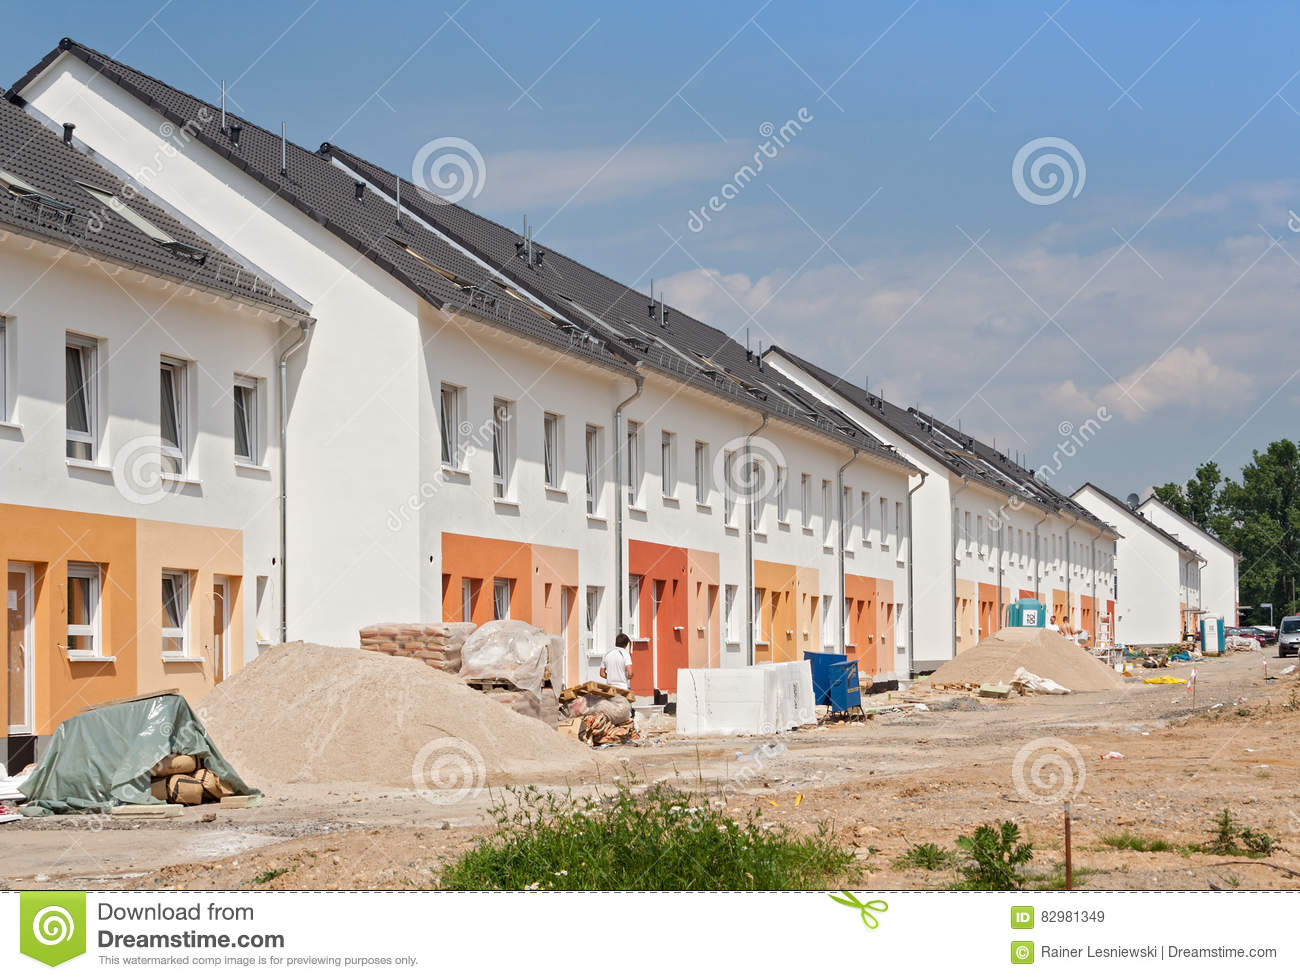 Building construction economy editorial photo for Houses that can be built for under 150k